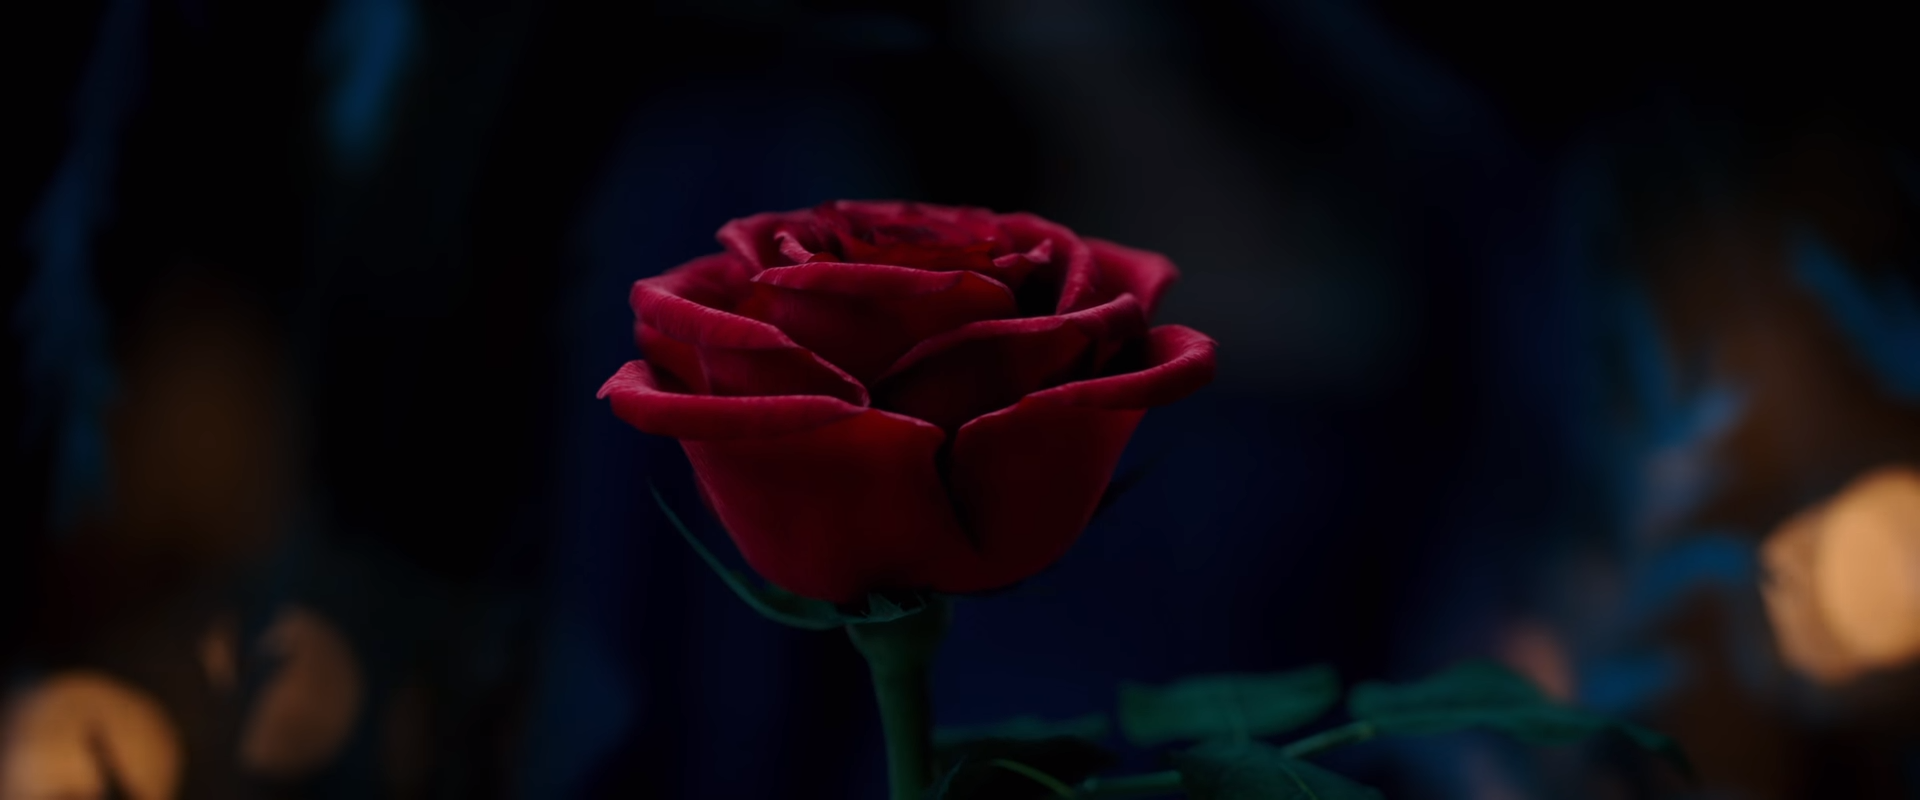 The Enchanted Rose | Beauty and the Beast 2017 Movie Wiki | FANDOM ...